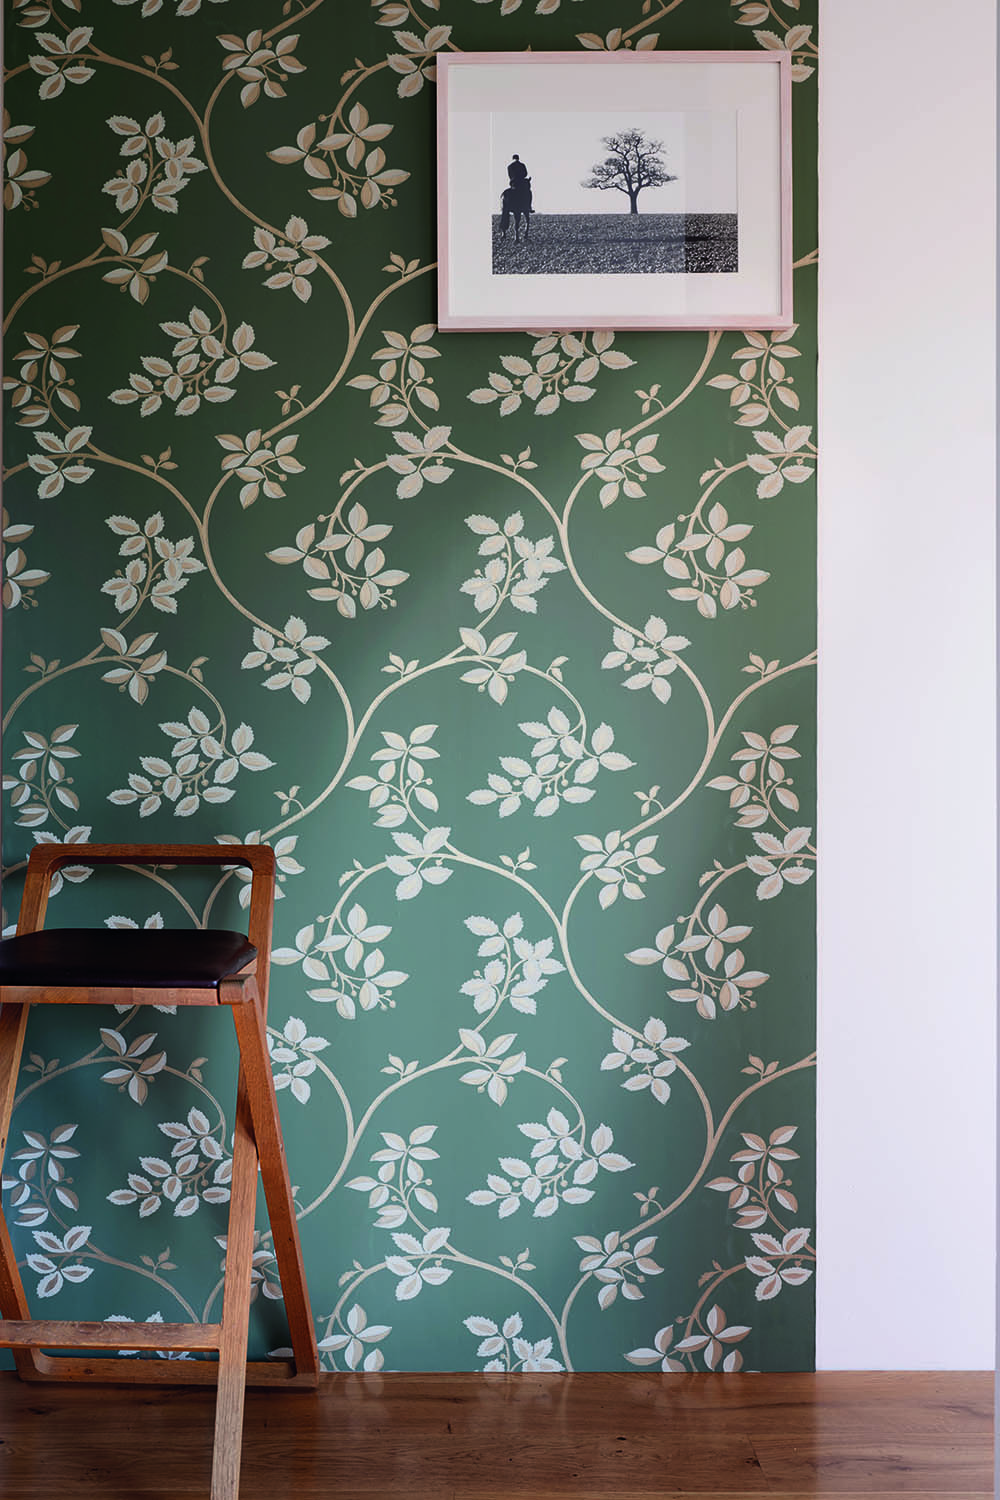 Farrow & Ball Ringwold BP 1654